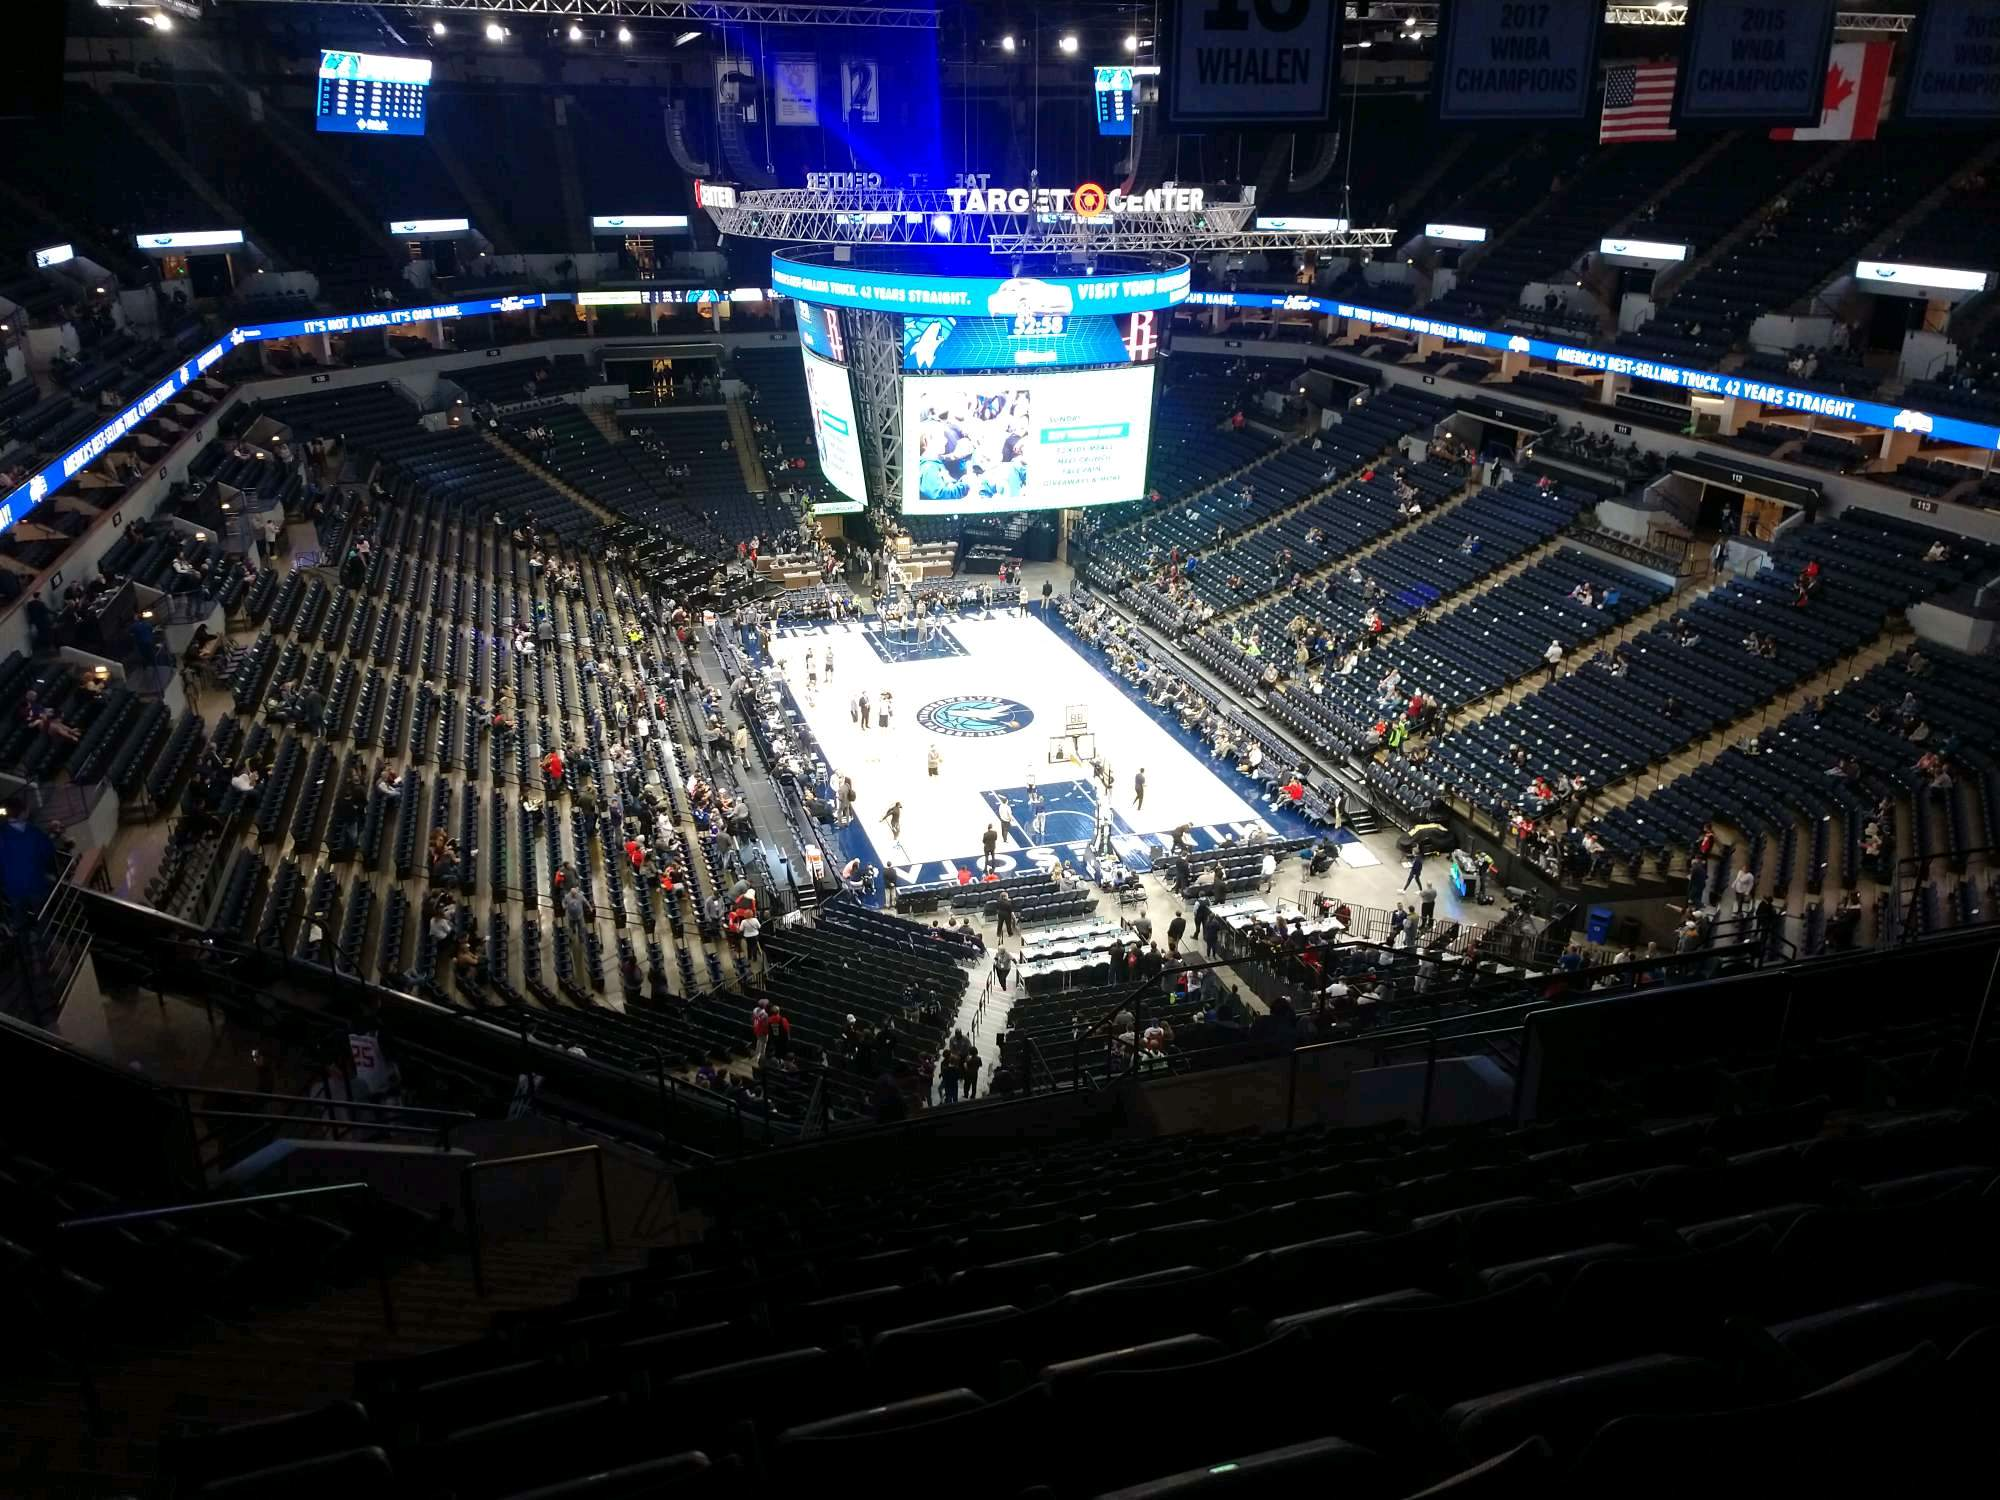 Target Center Section 223 Row S Seat 9